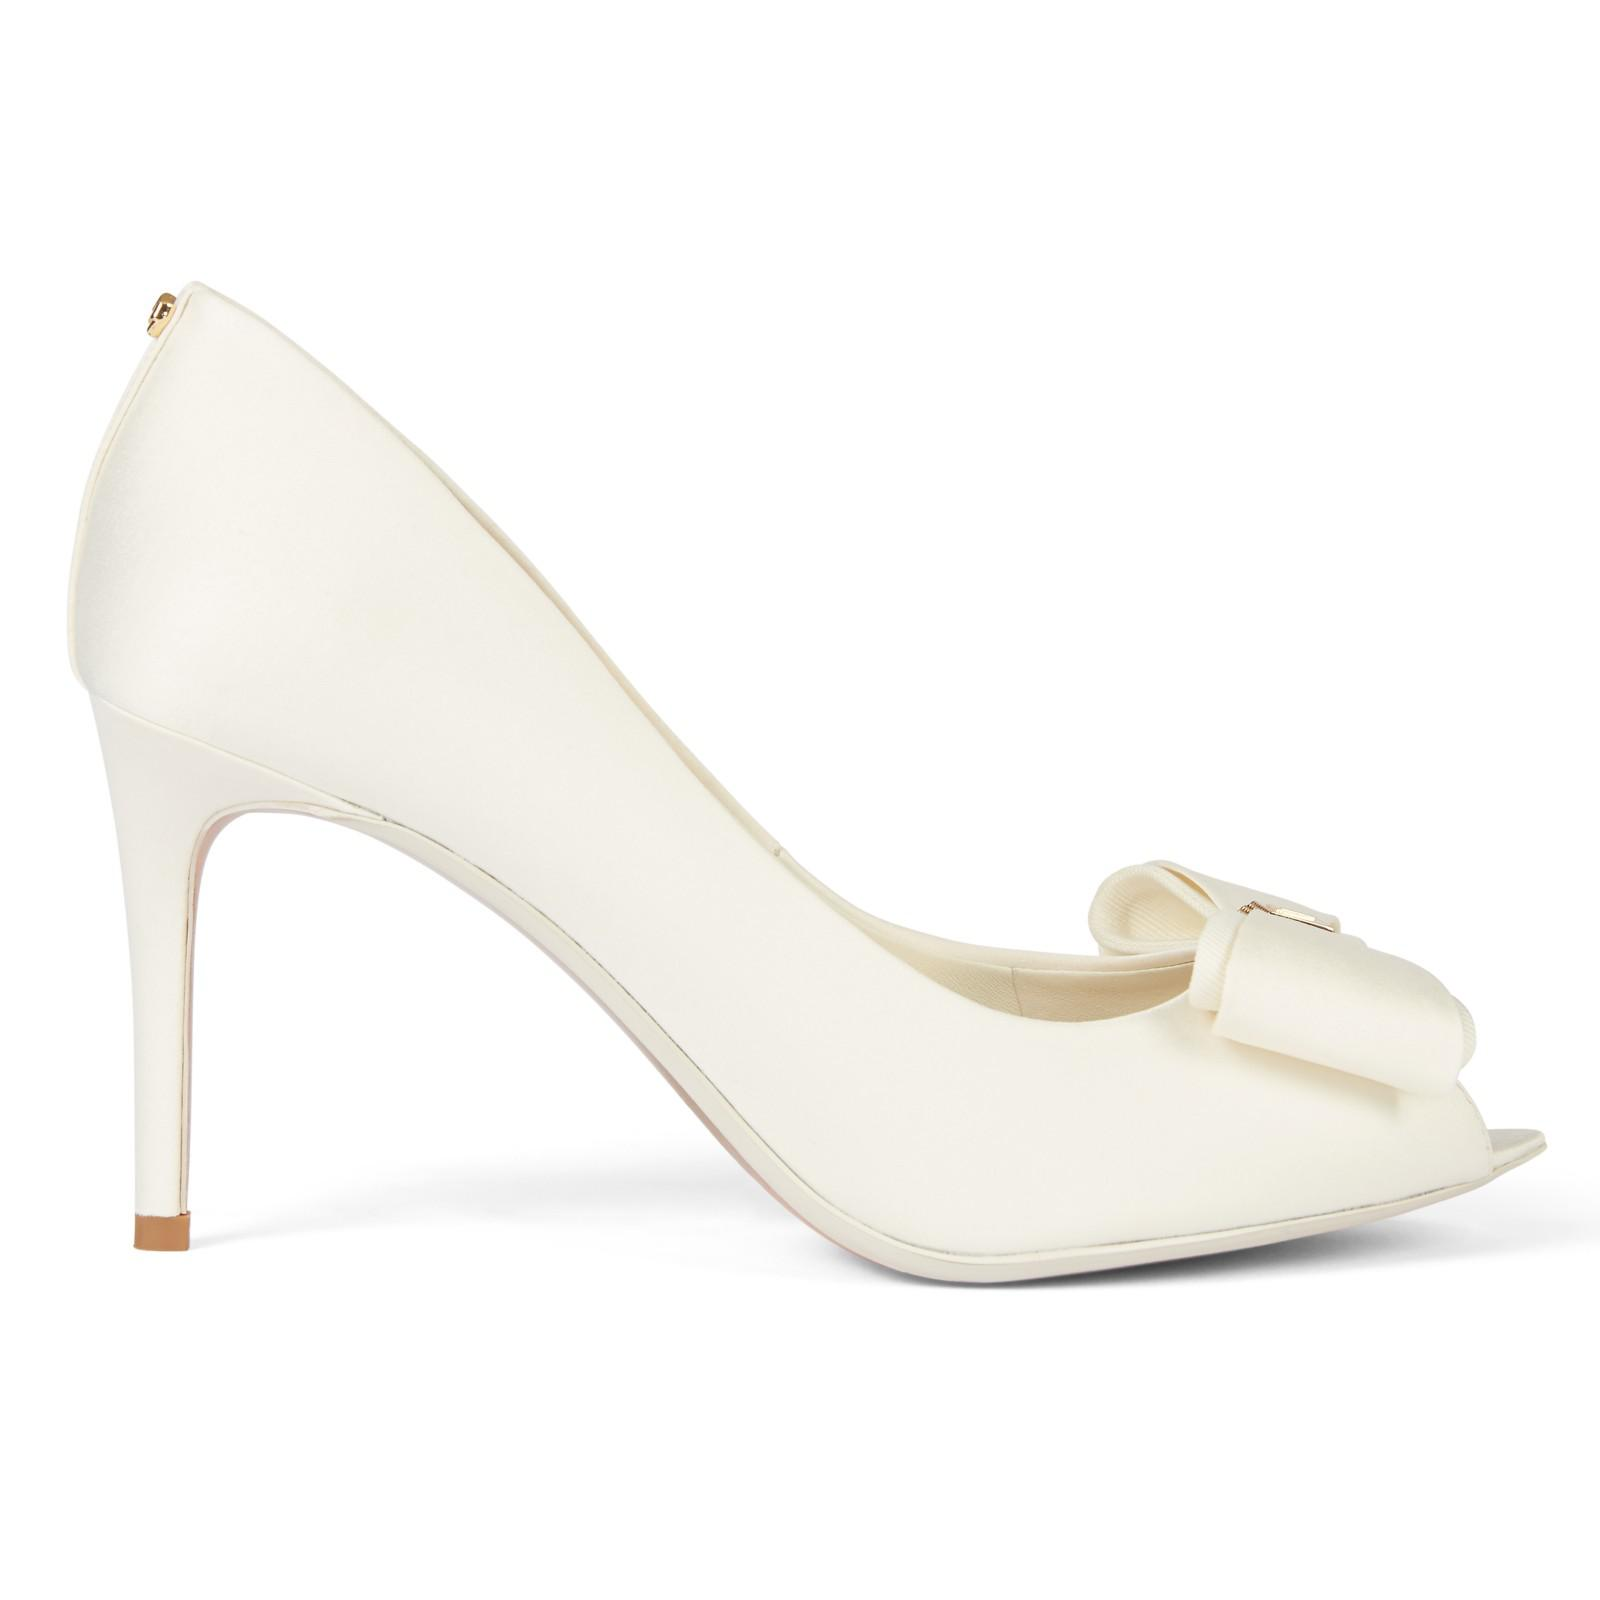 0e17516f4d59 Ted Baker Tie The Knot Alifair Peep Toe Bow Sandals in White - Lyst